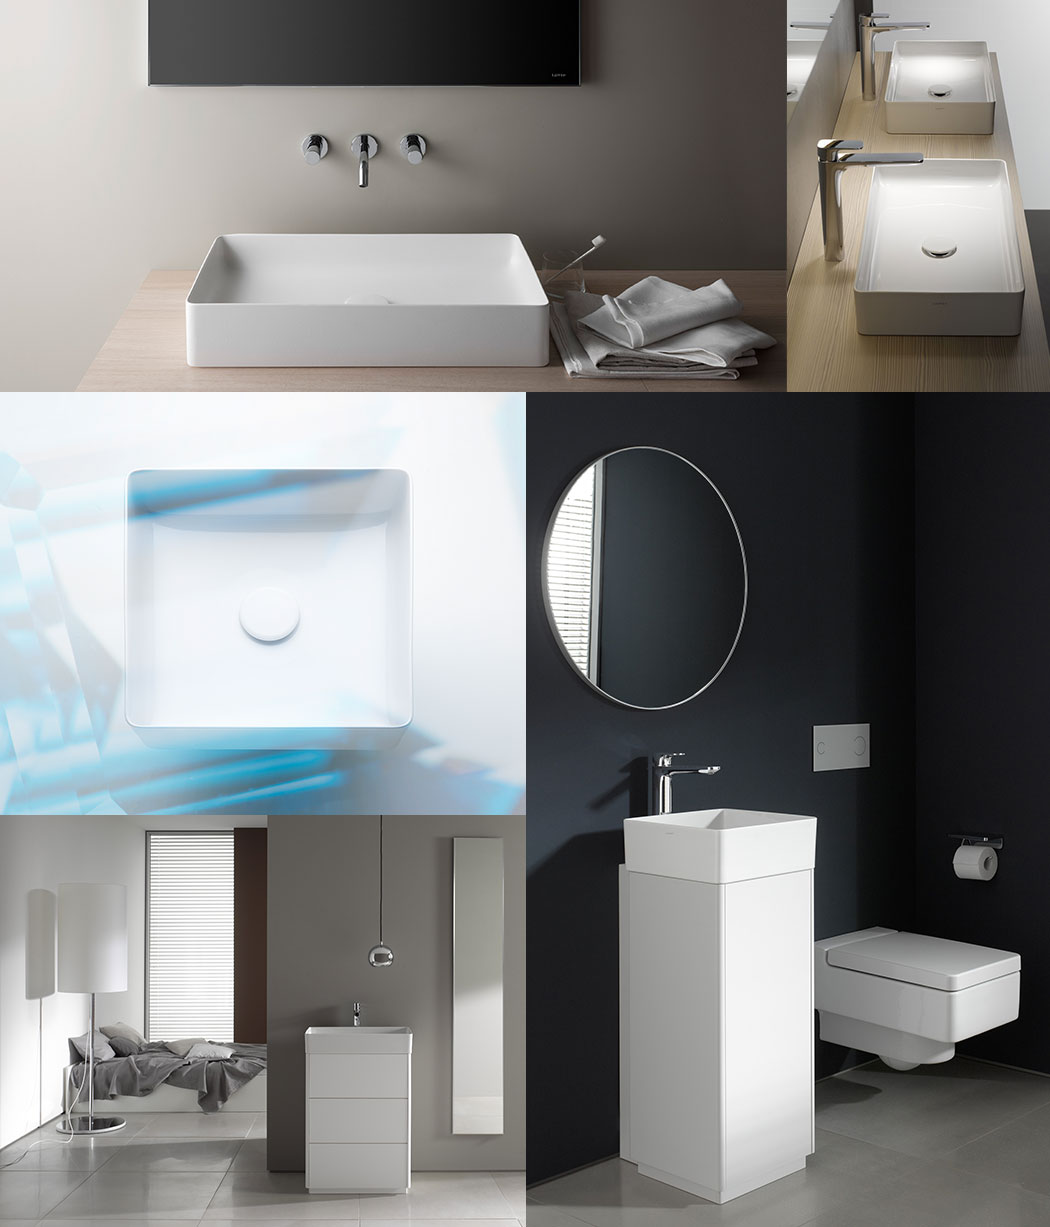 reece bathrooms laufen livingsapherkeramarik